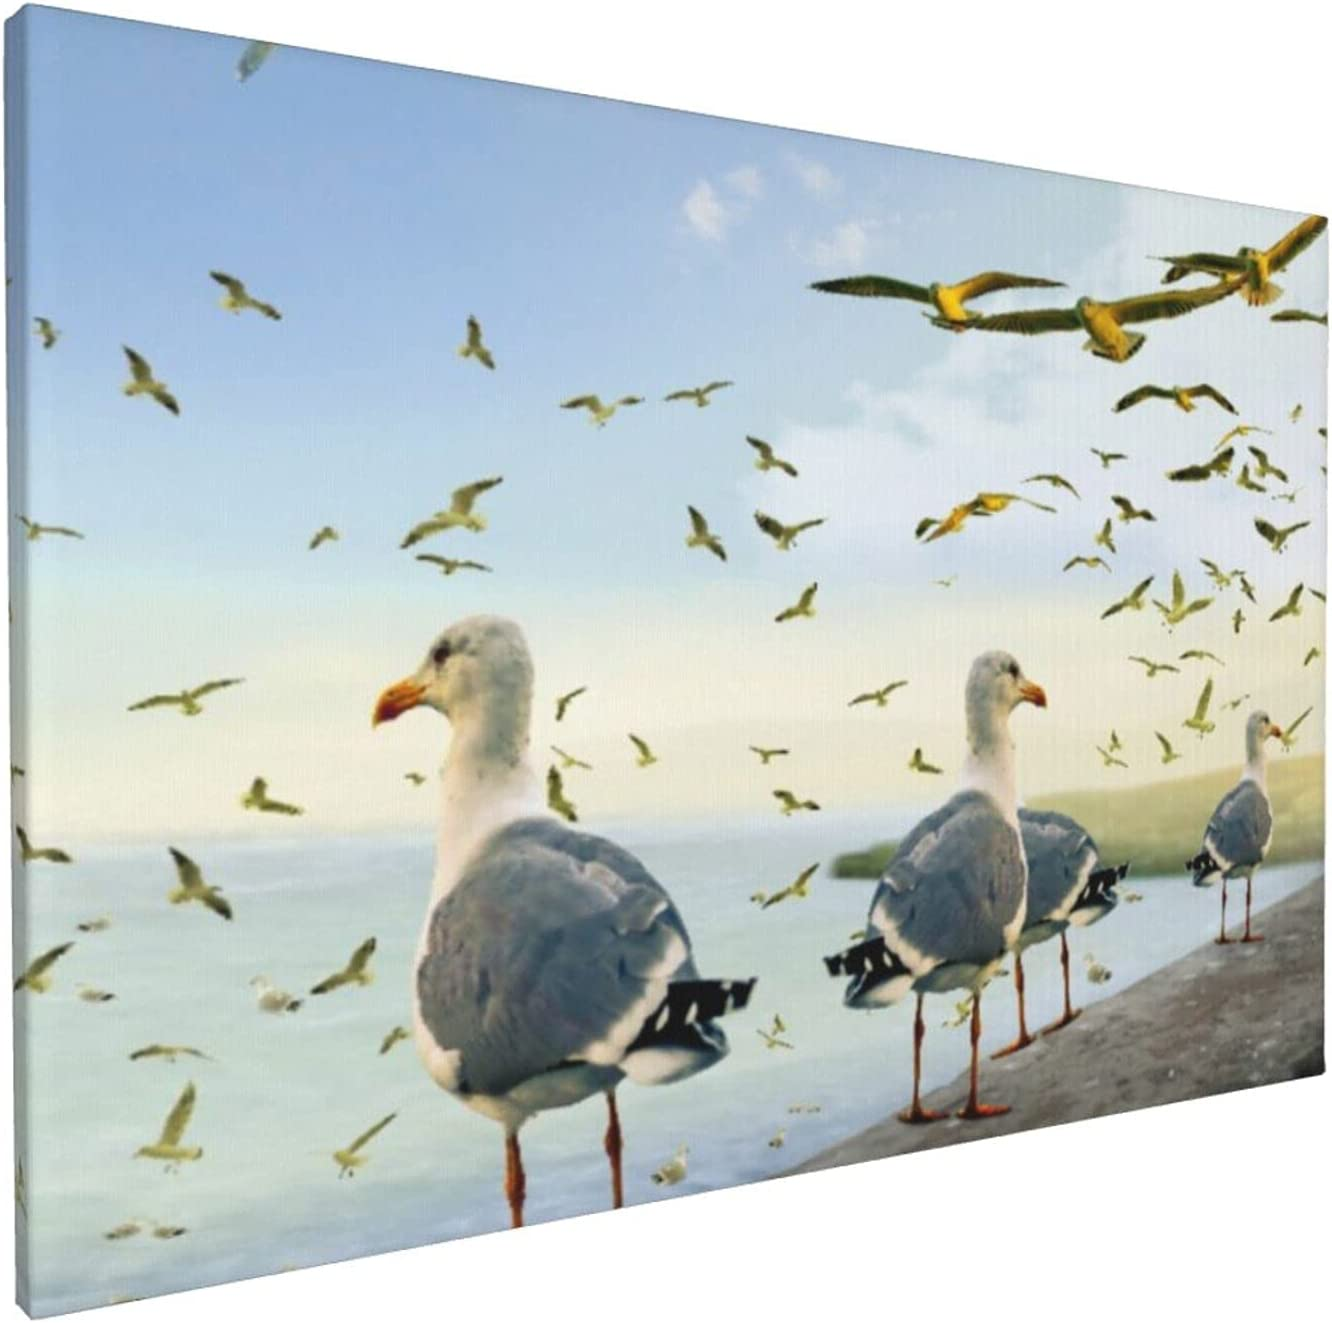 Canvas Wall Art Great interest Oil Painting Seagulls Office Seaside Home low-pricing Decor